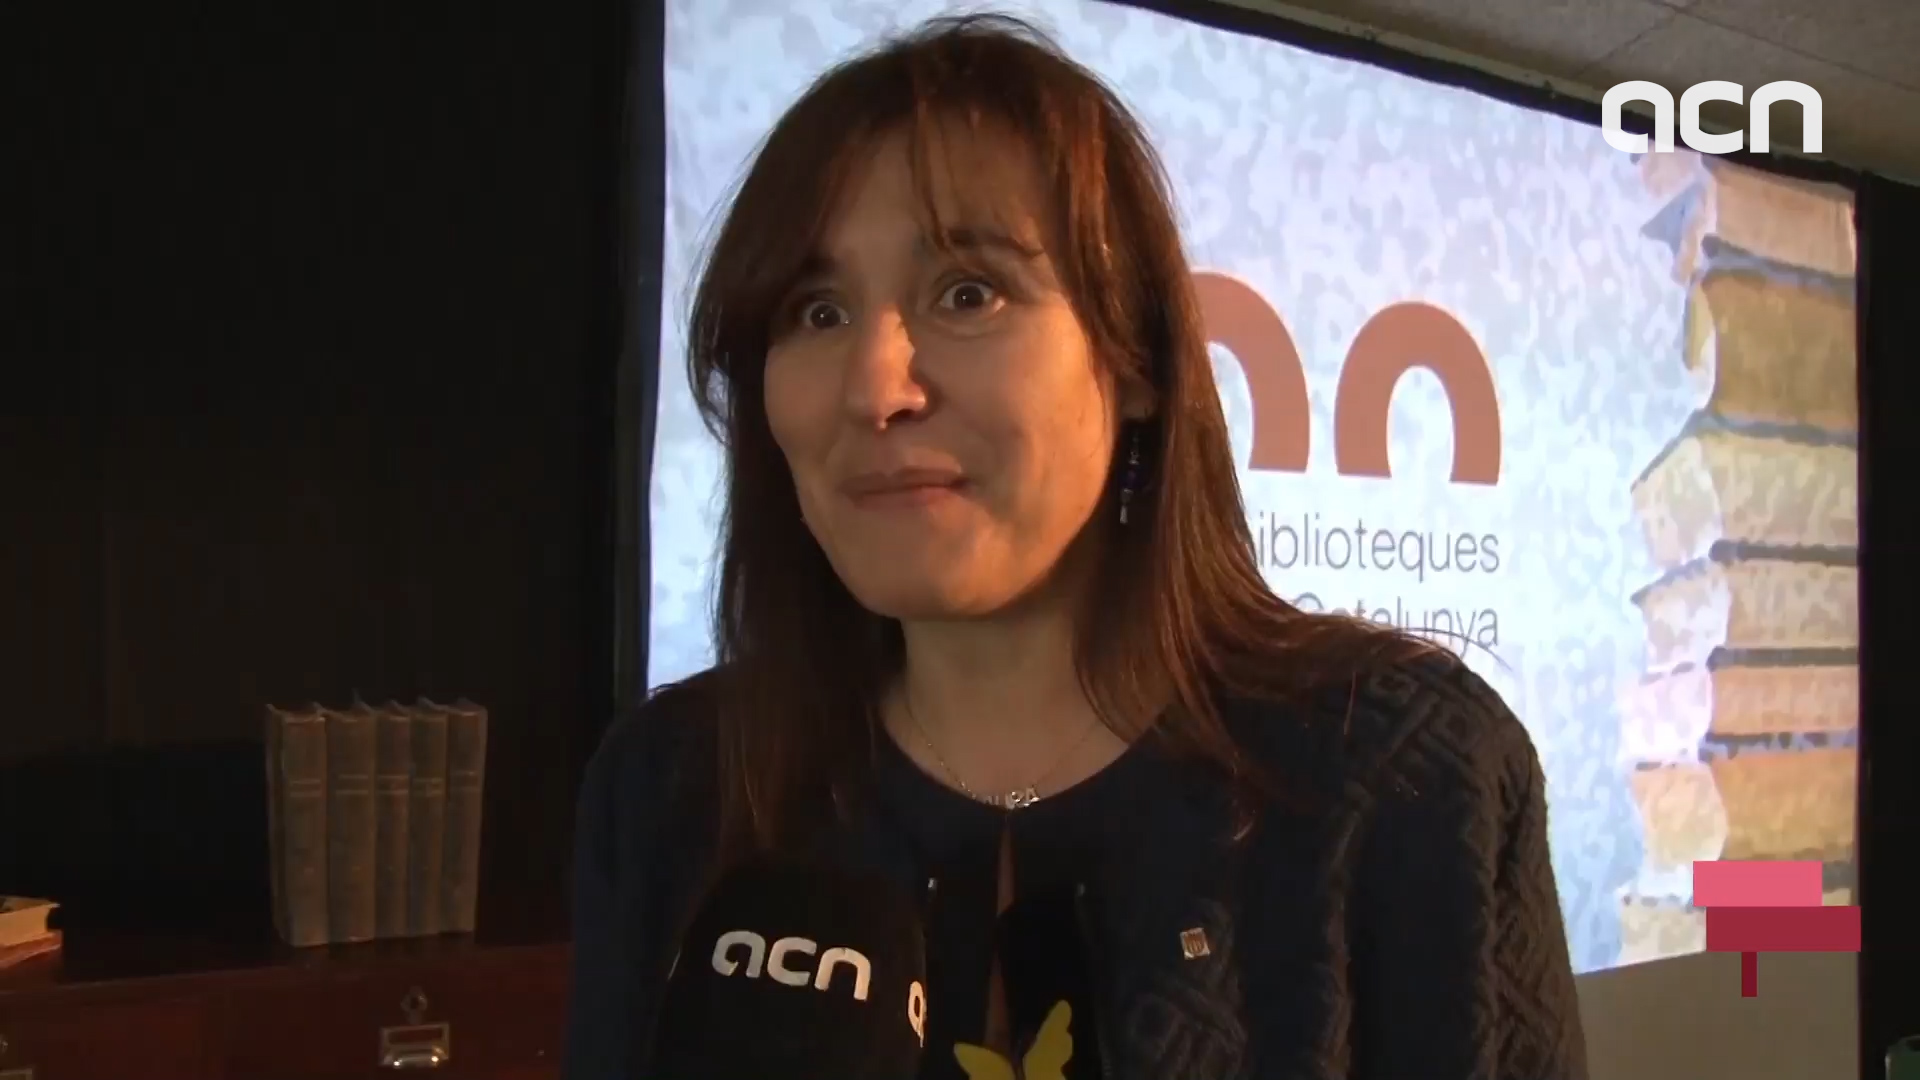 The Catalan minister of Culture speaks of the campaign